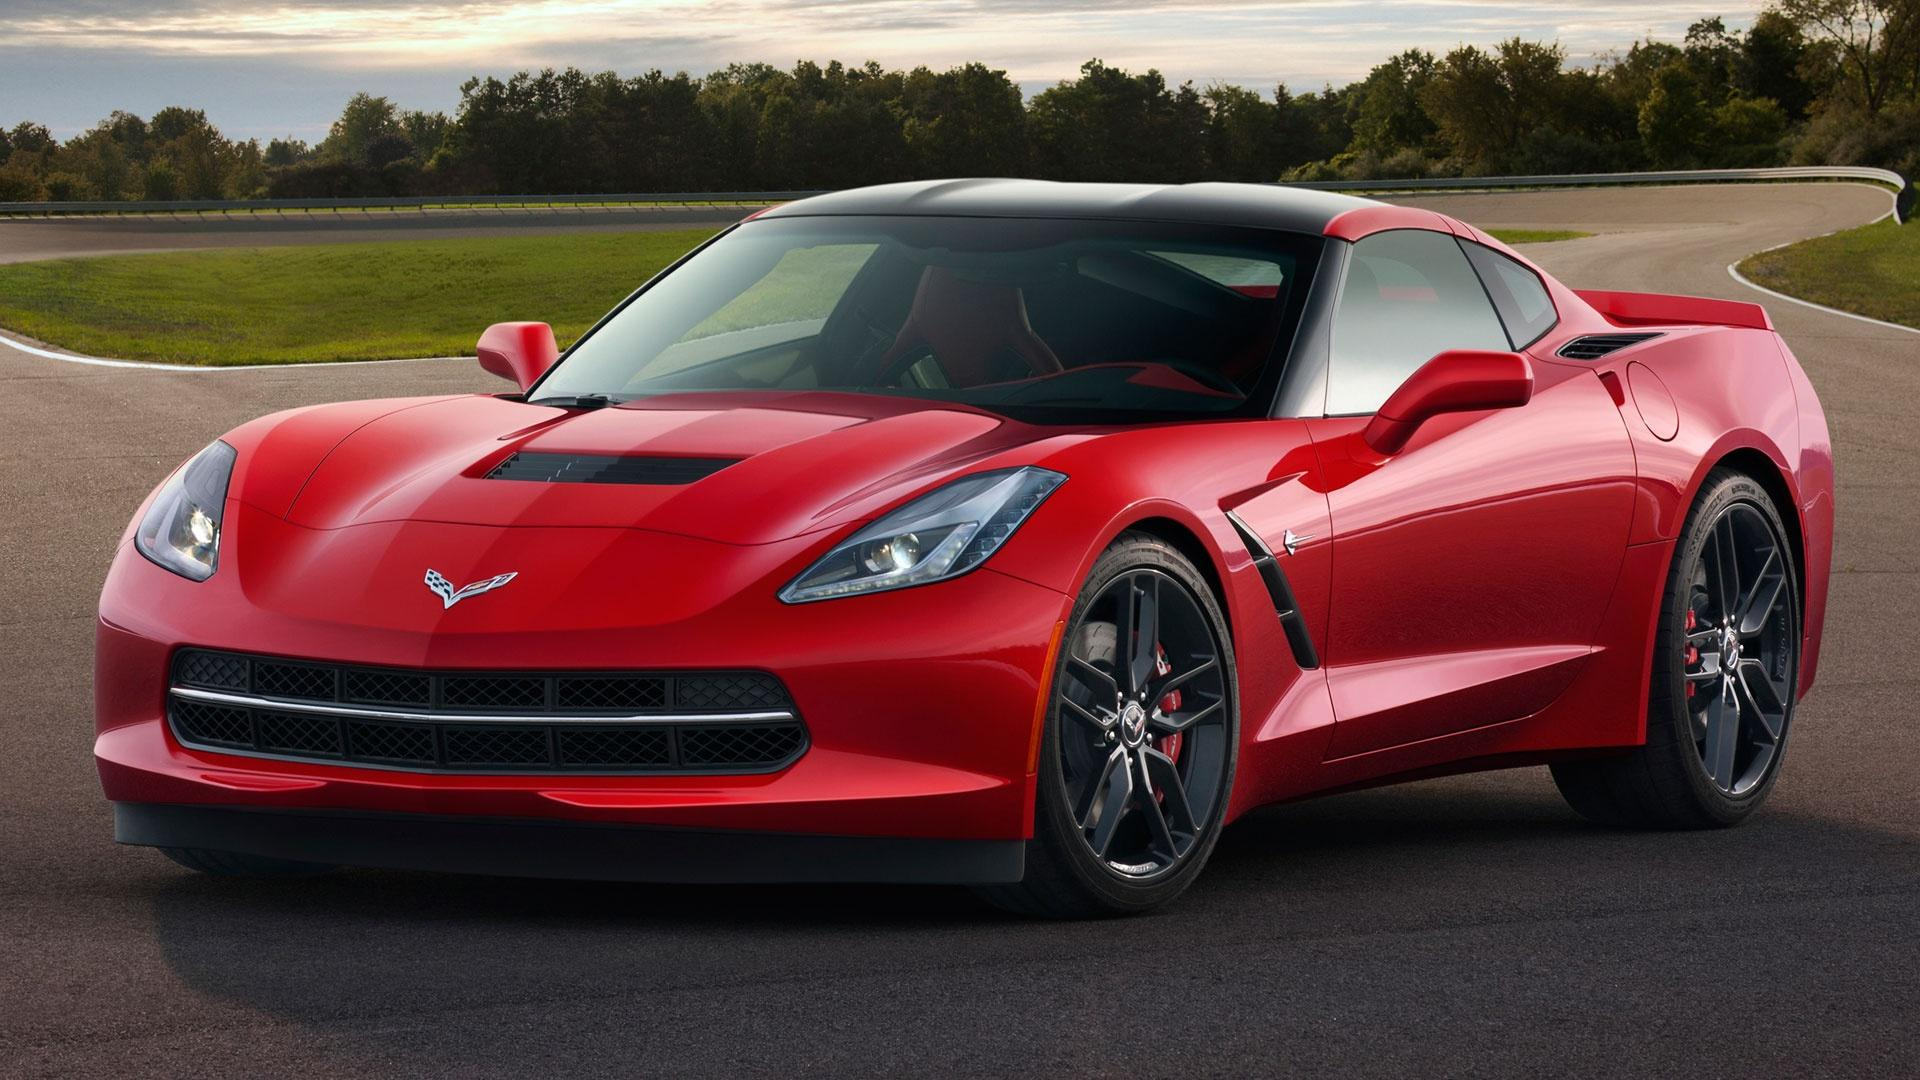 2014 Chevrolet Corvette Stingray & 2015 Honda Fit image